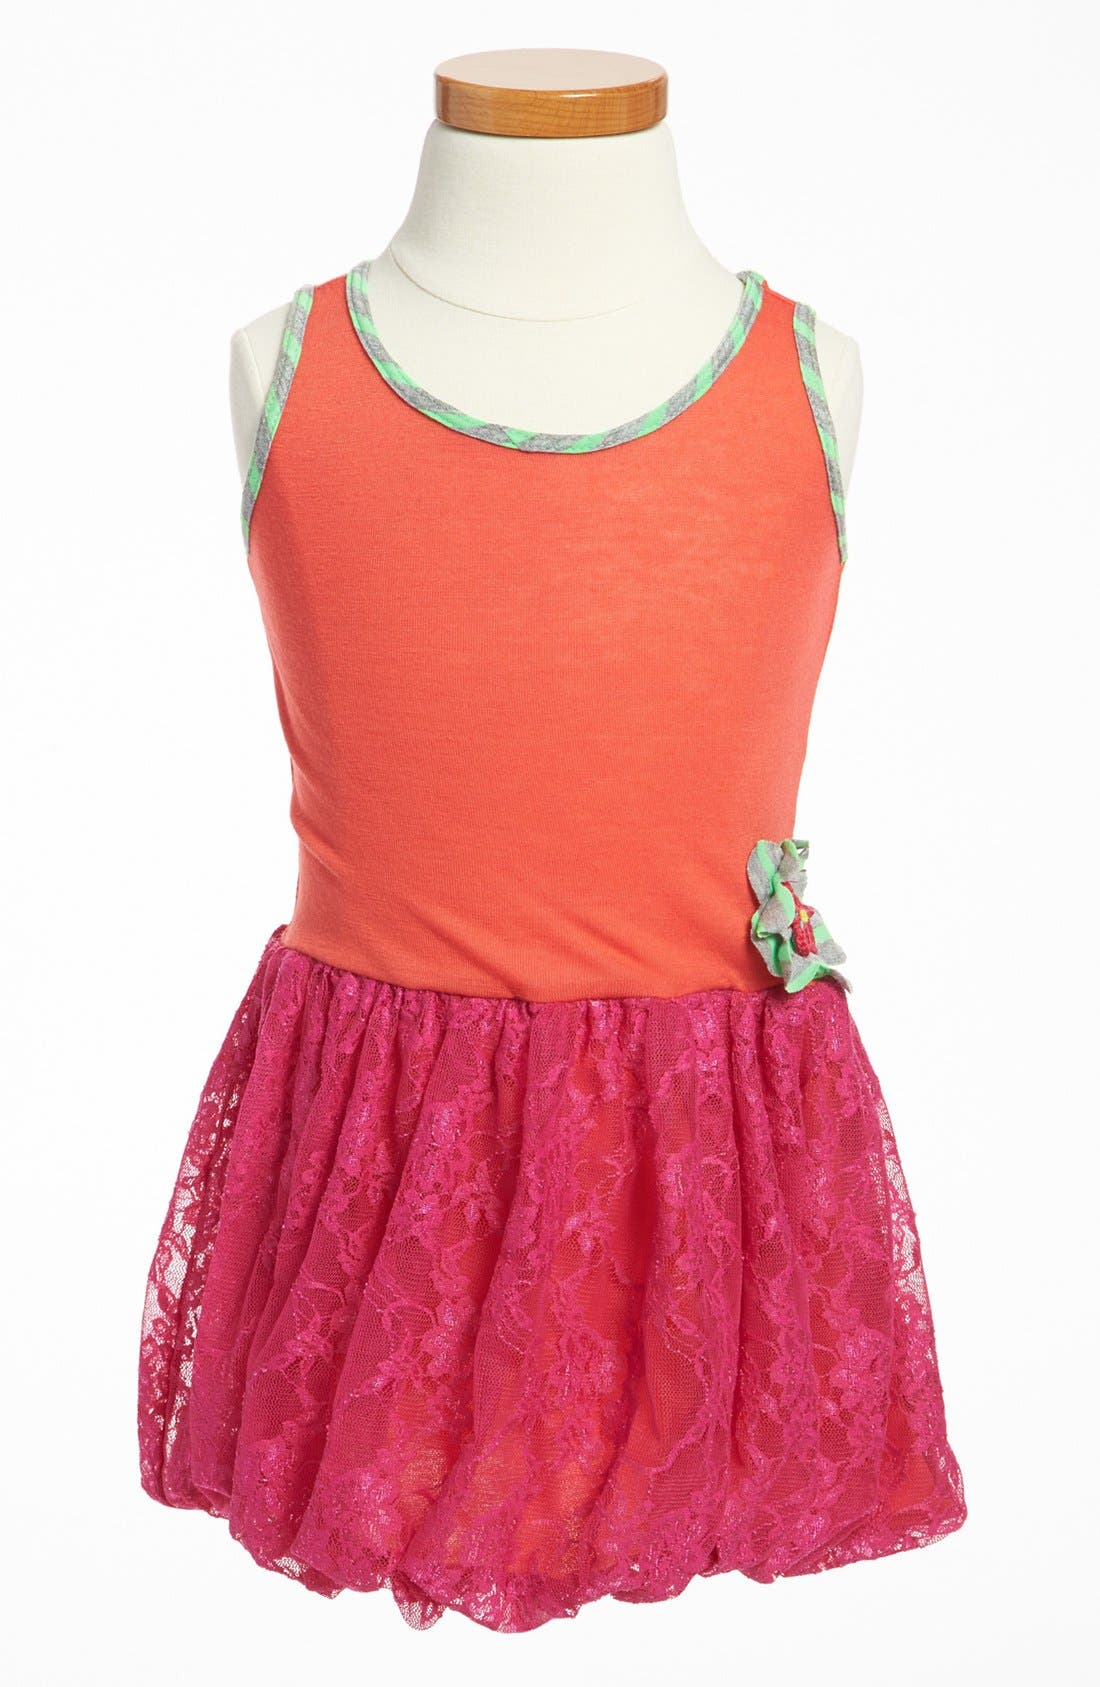 Alternate Image 1 Selected - Twirls & Twigs Bubble Skirt Dress (Toddler)